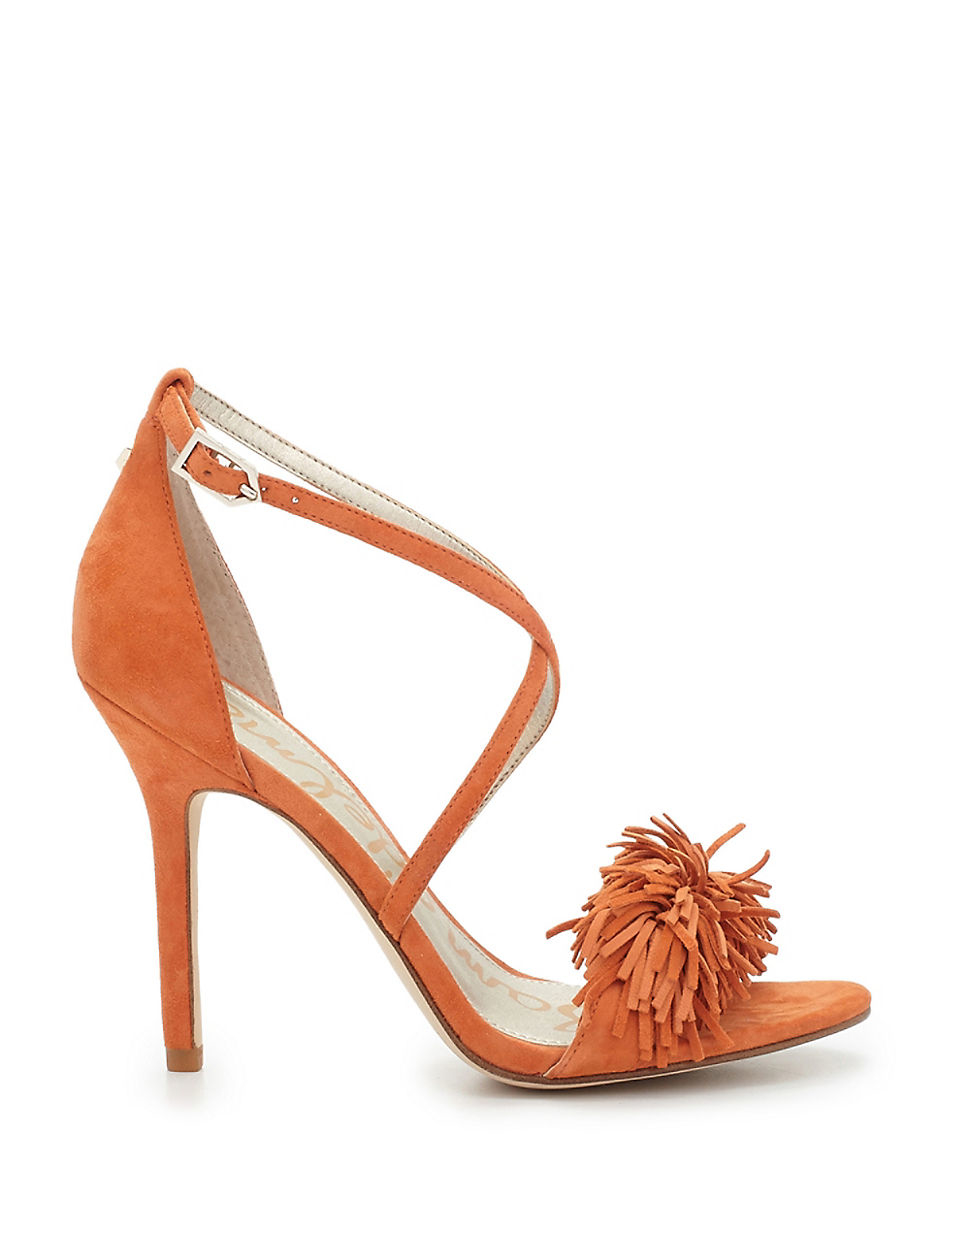 083a5c6b7 Sam Edelman Aisha Suede Sandals in Orange - Lyst